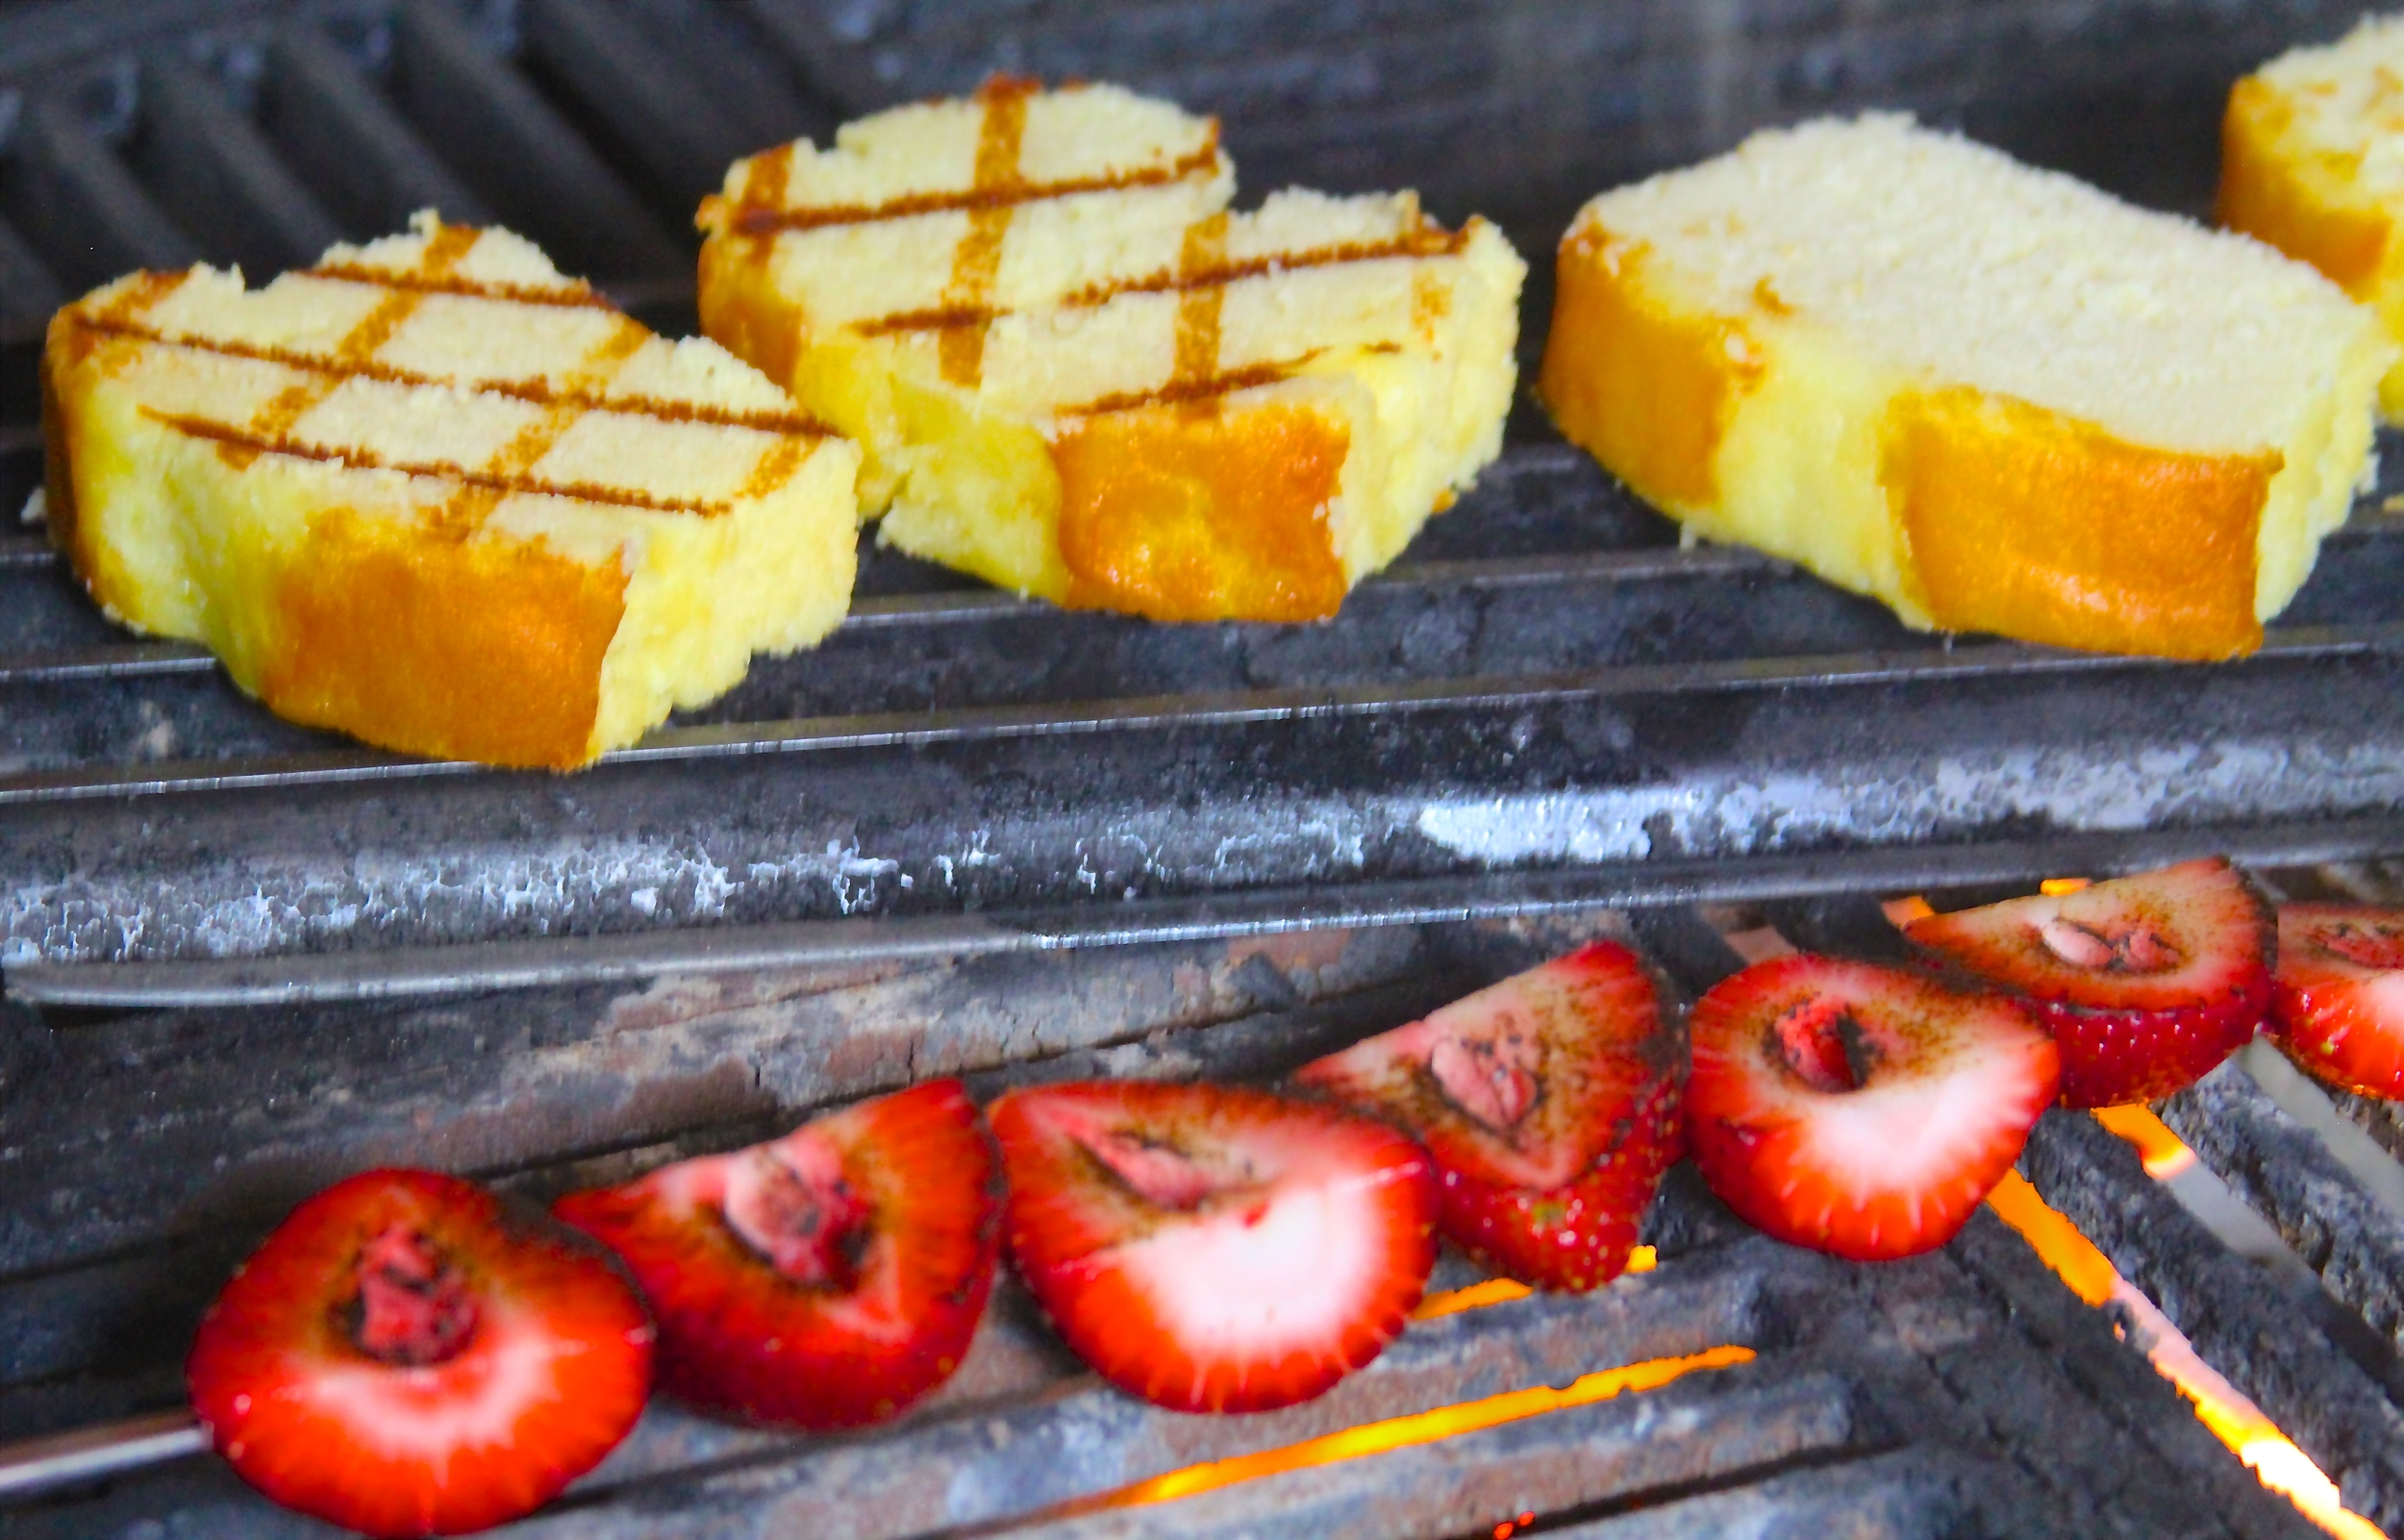 Grilled Strawberries and Poundcake